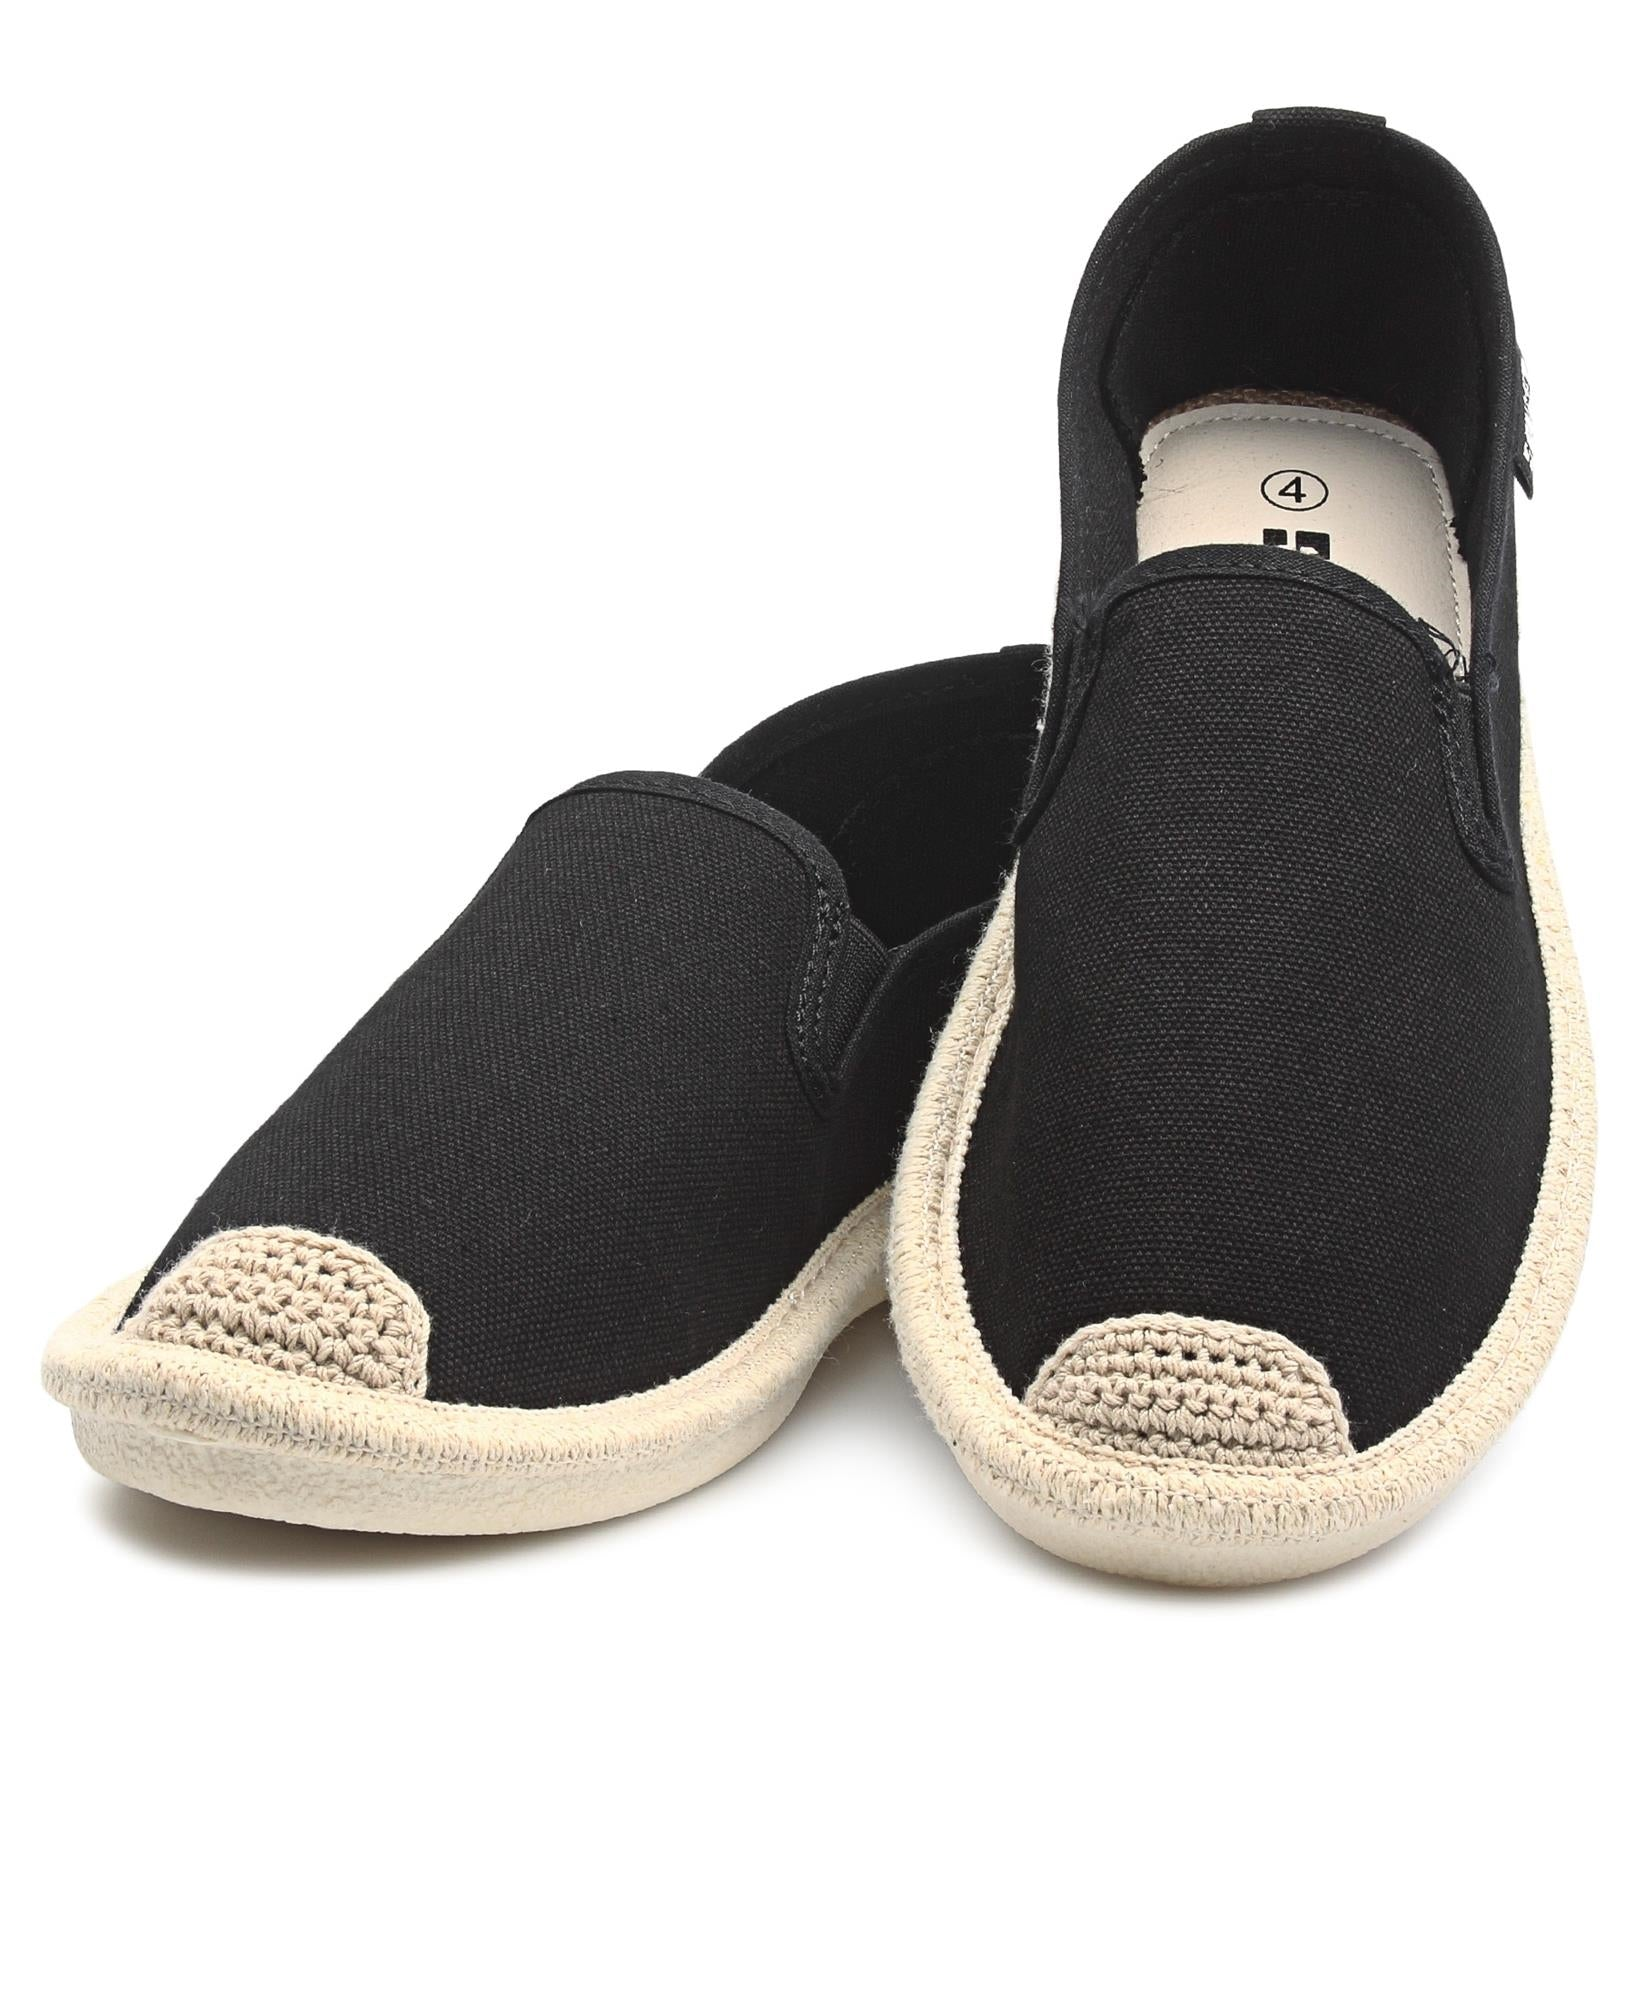 Ladies' Snowflake Espadrilles - Black